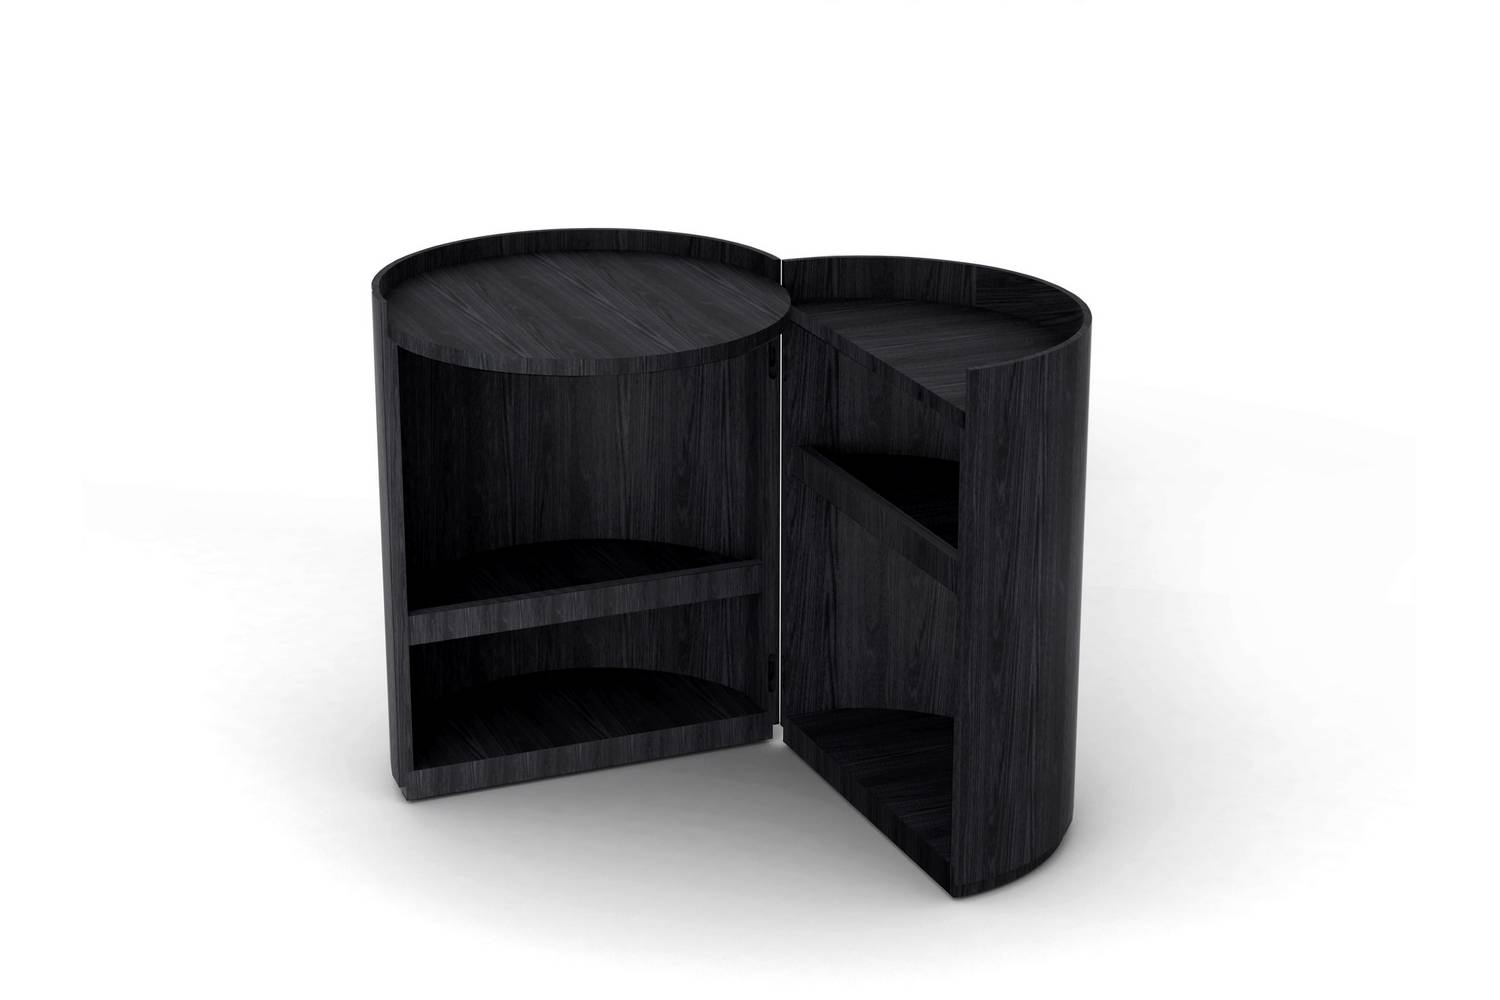 Divano Lunar B&amp Moon Bedside Table By Mist O For Living Divani Space Furniture